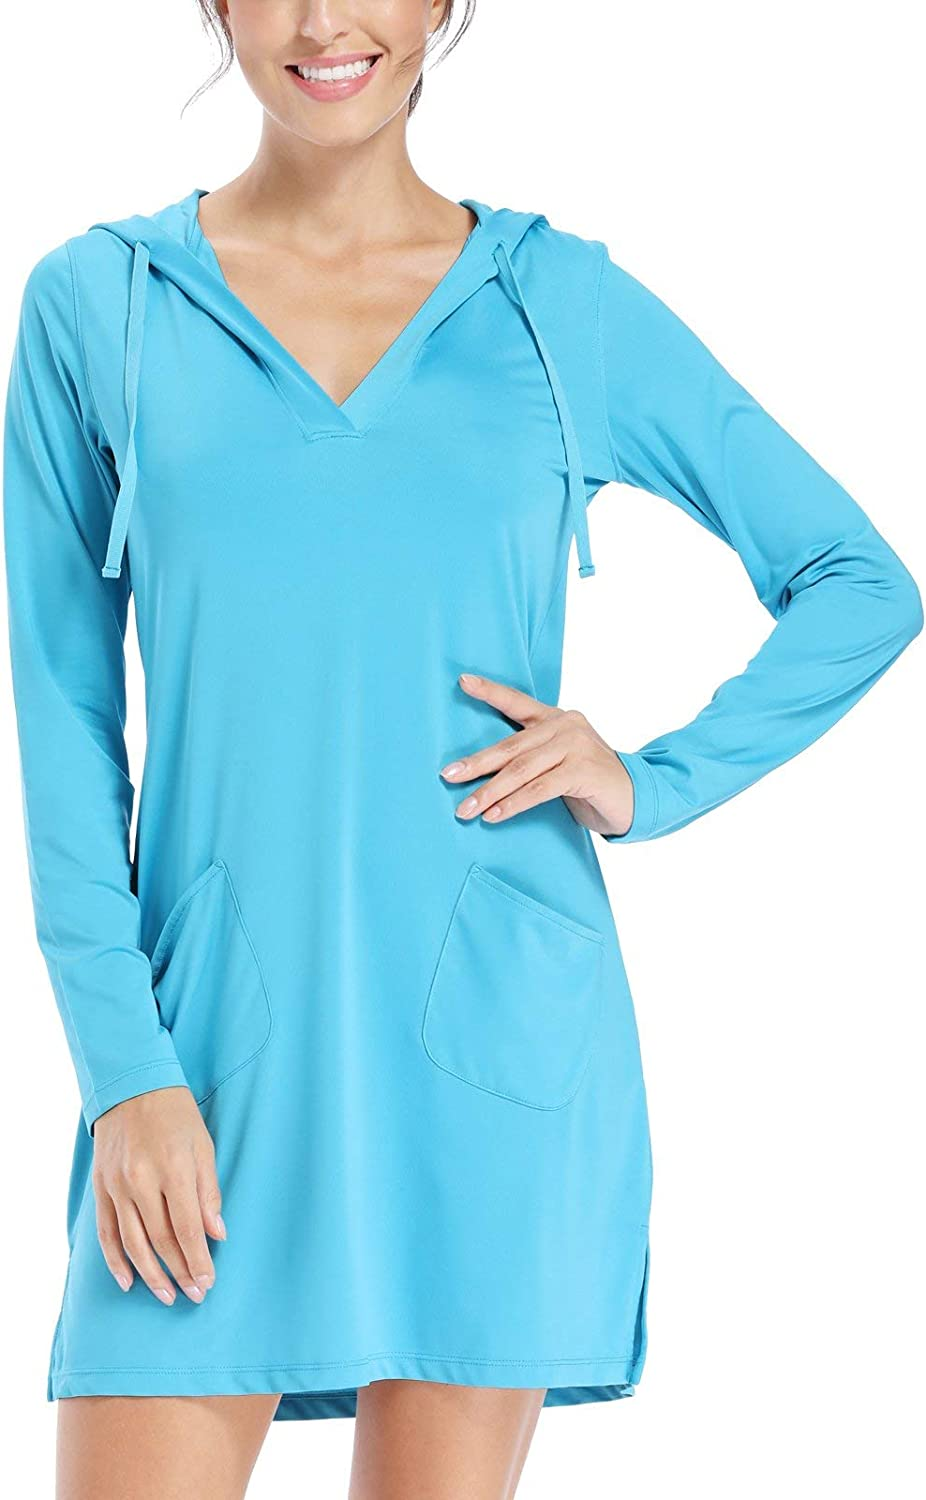 Cabana Life Dress Cover Up UV Protect Quick dry Size:10